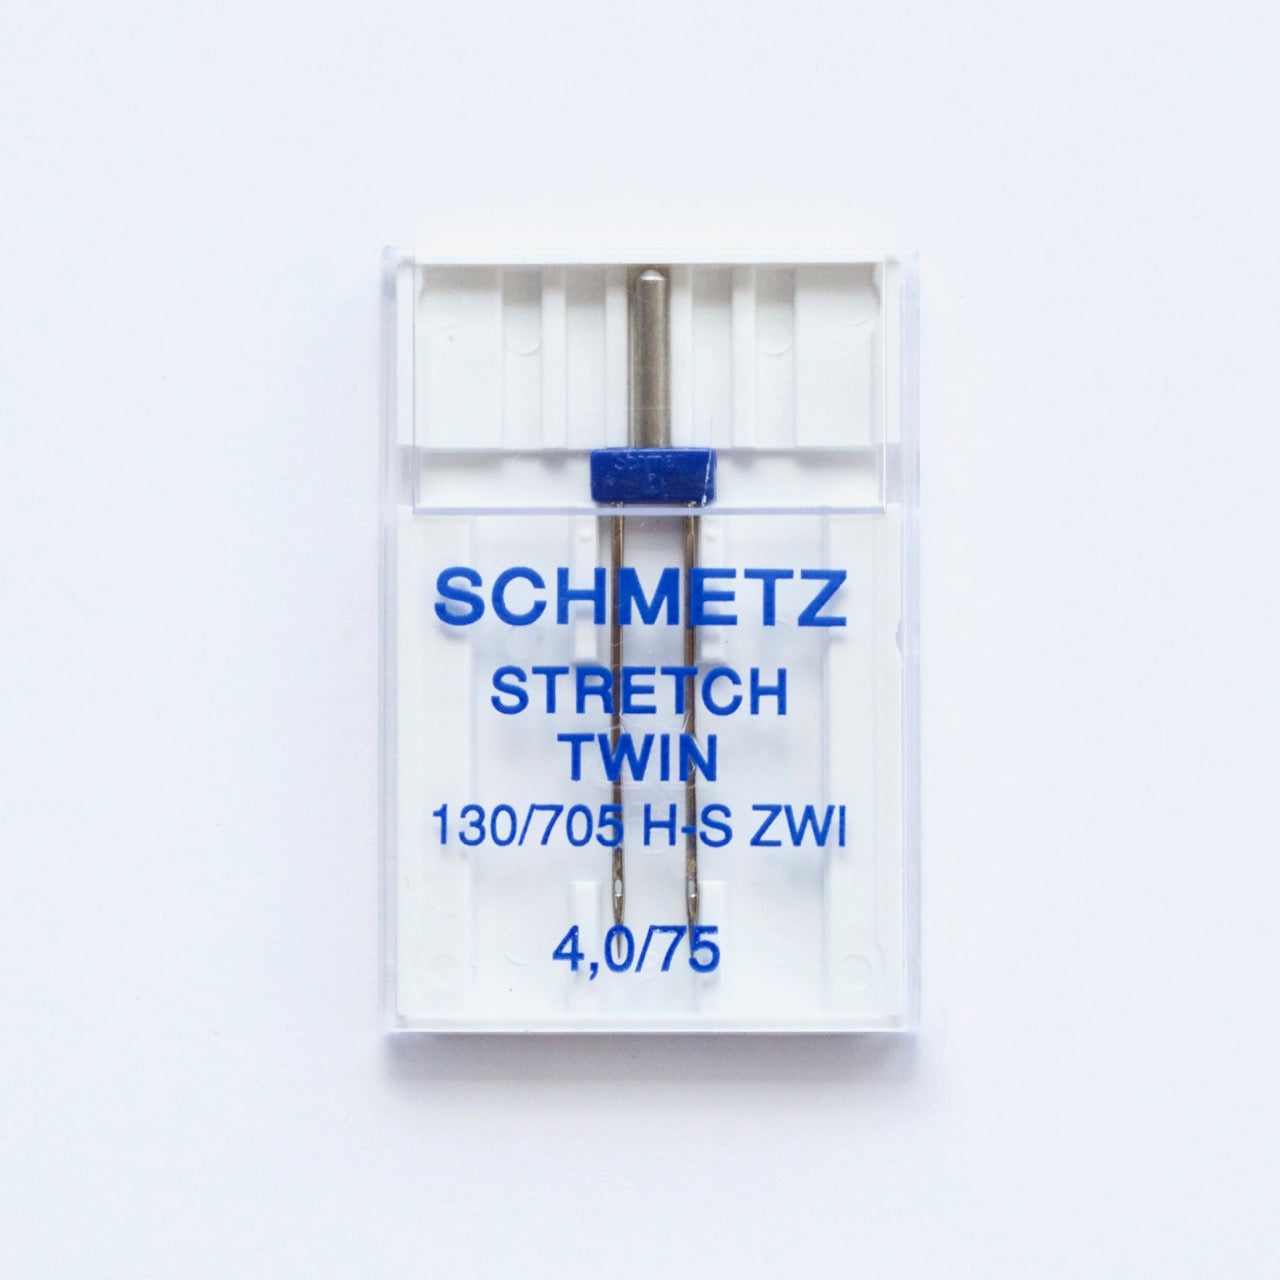 4mm Twin Machine Needle for Stretch - Schmetz - MaaiDesign